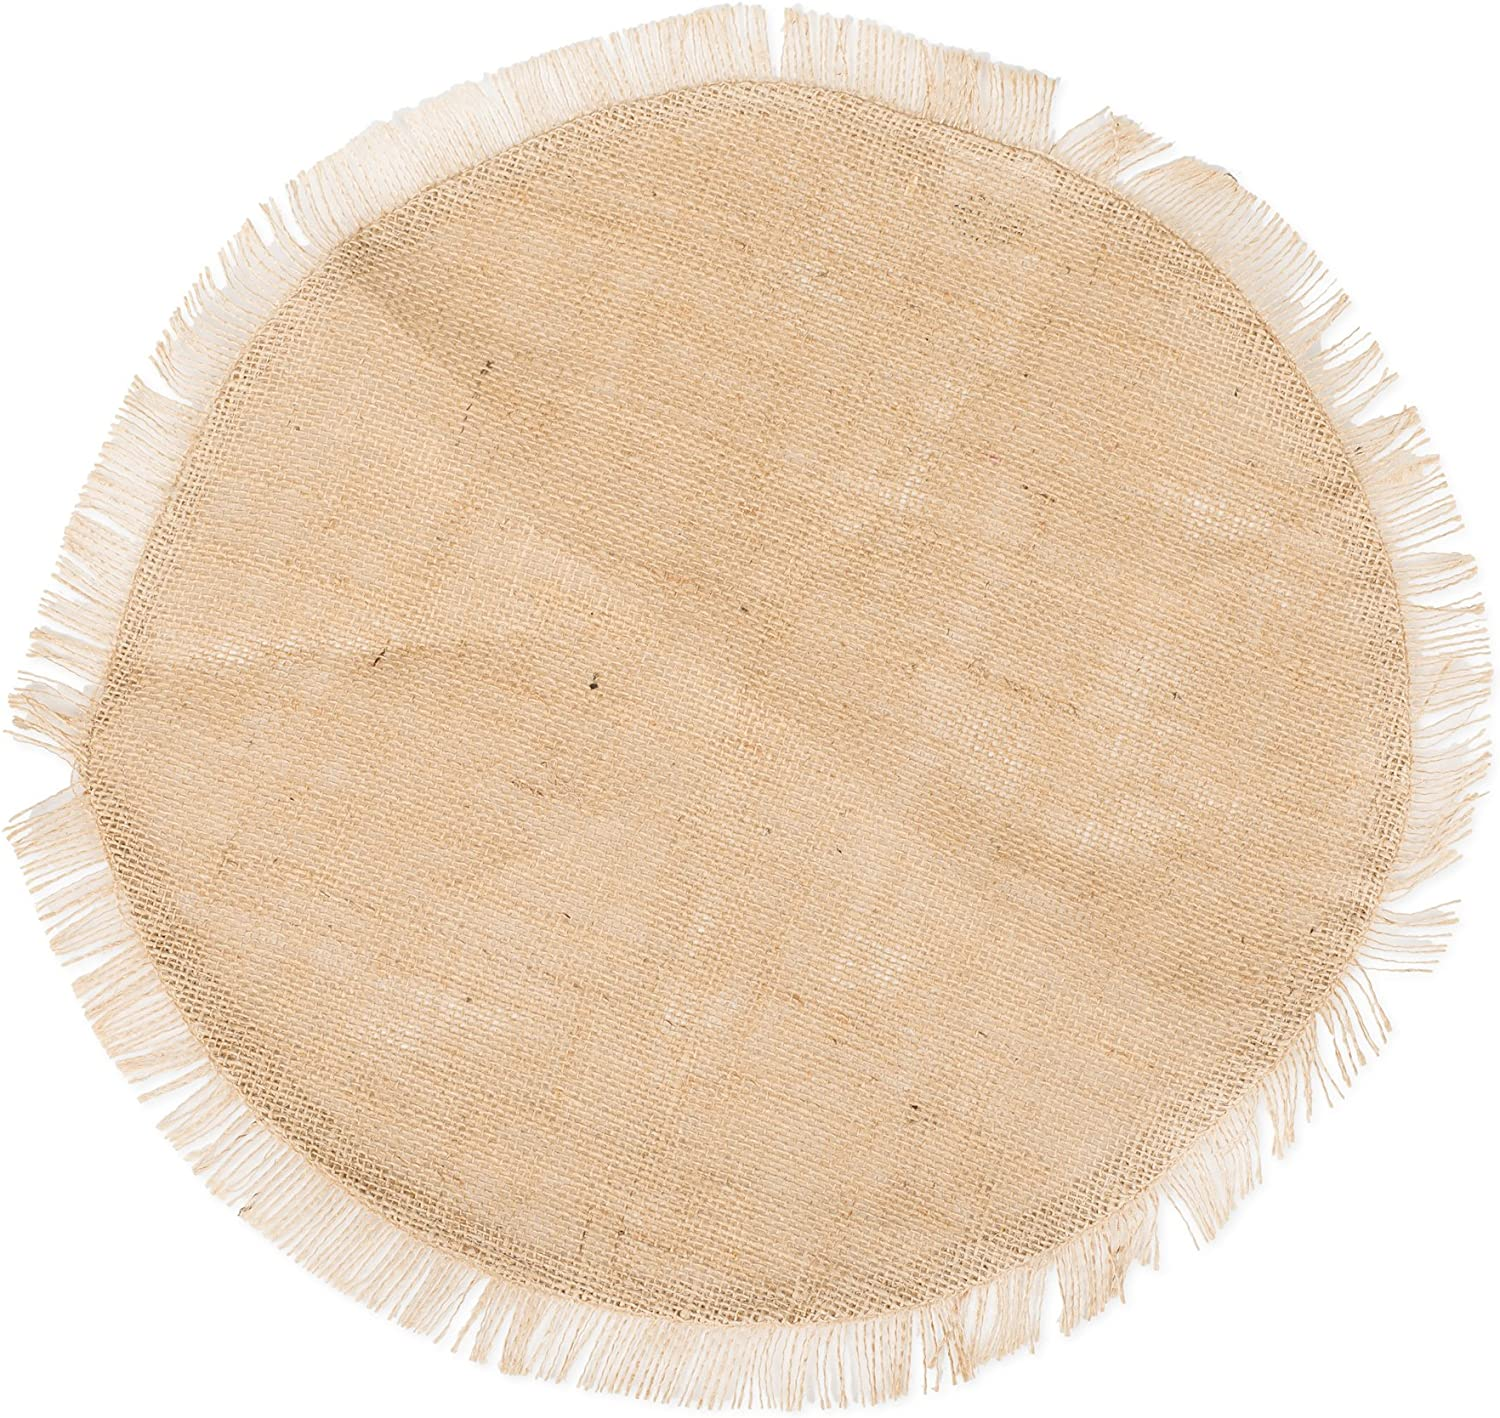 The Country House Collection Phoenix Mall 14 Burlap Fringed Price reduction Mat Inch Round